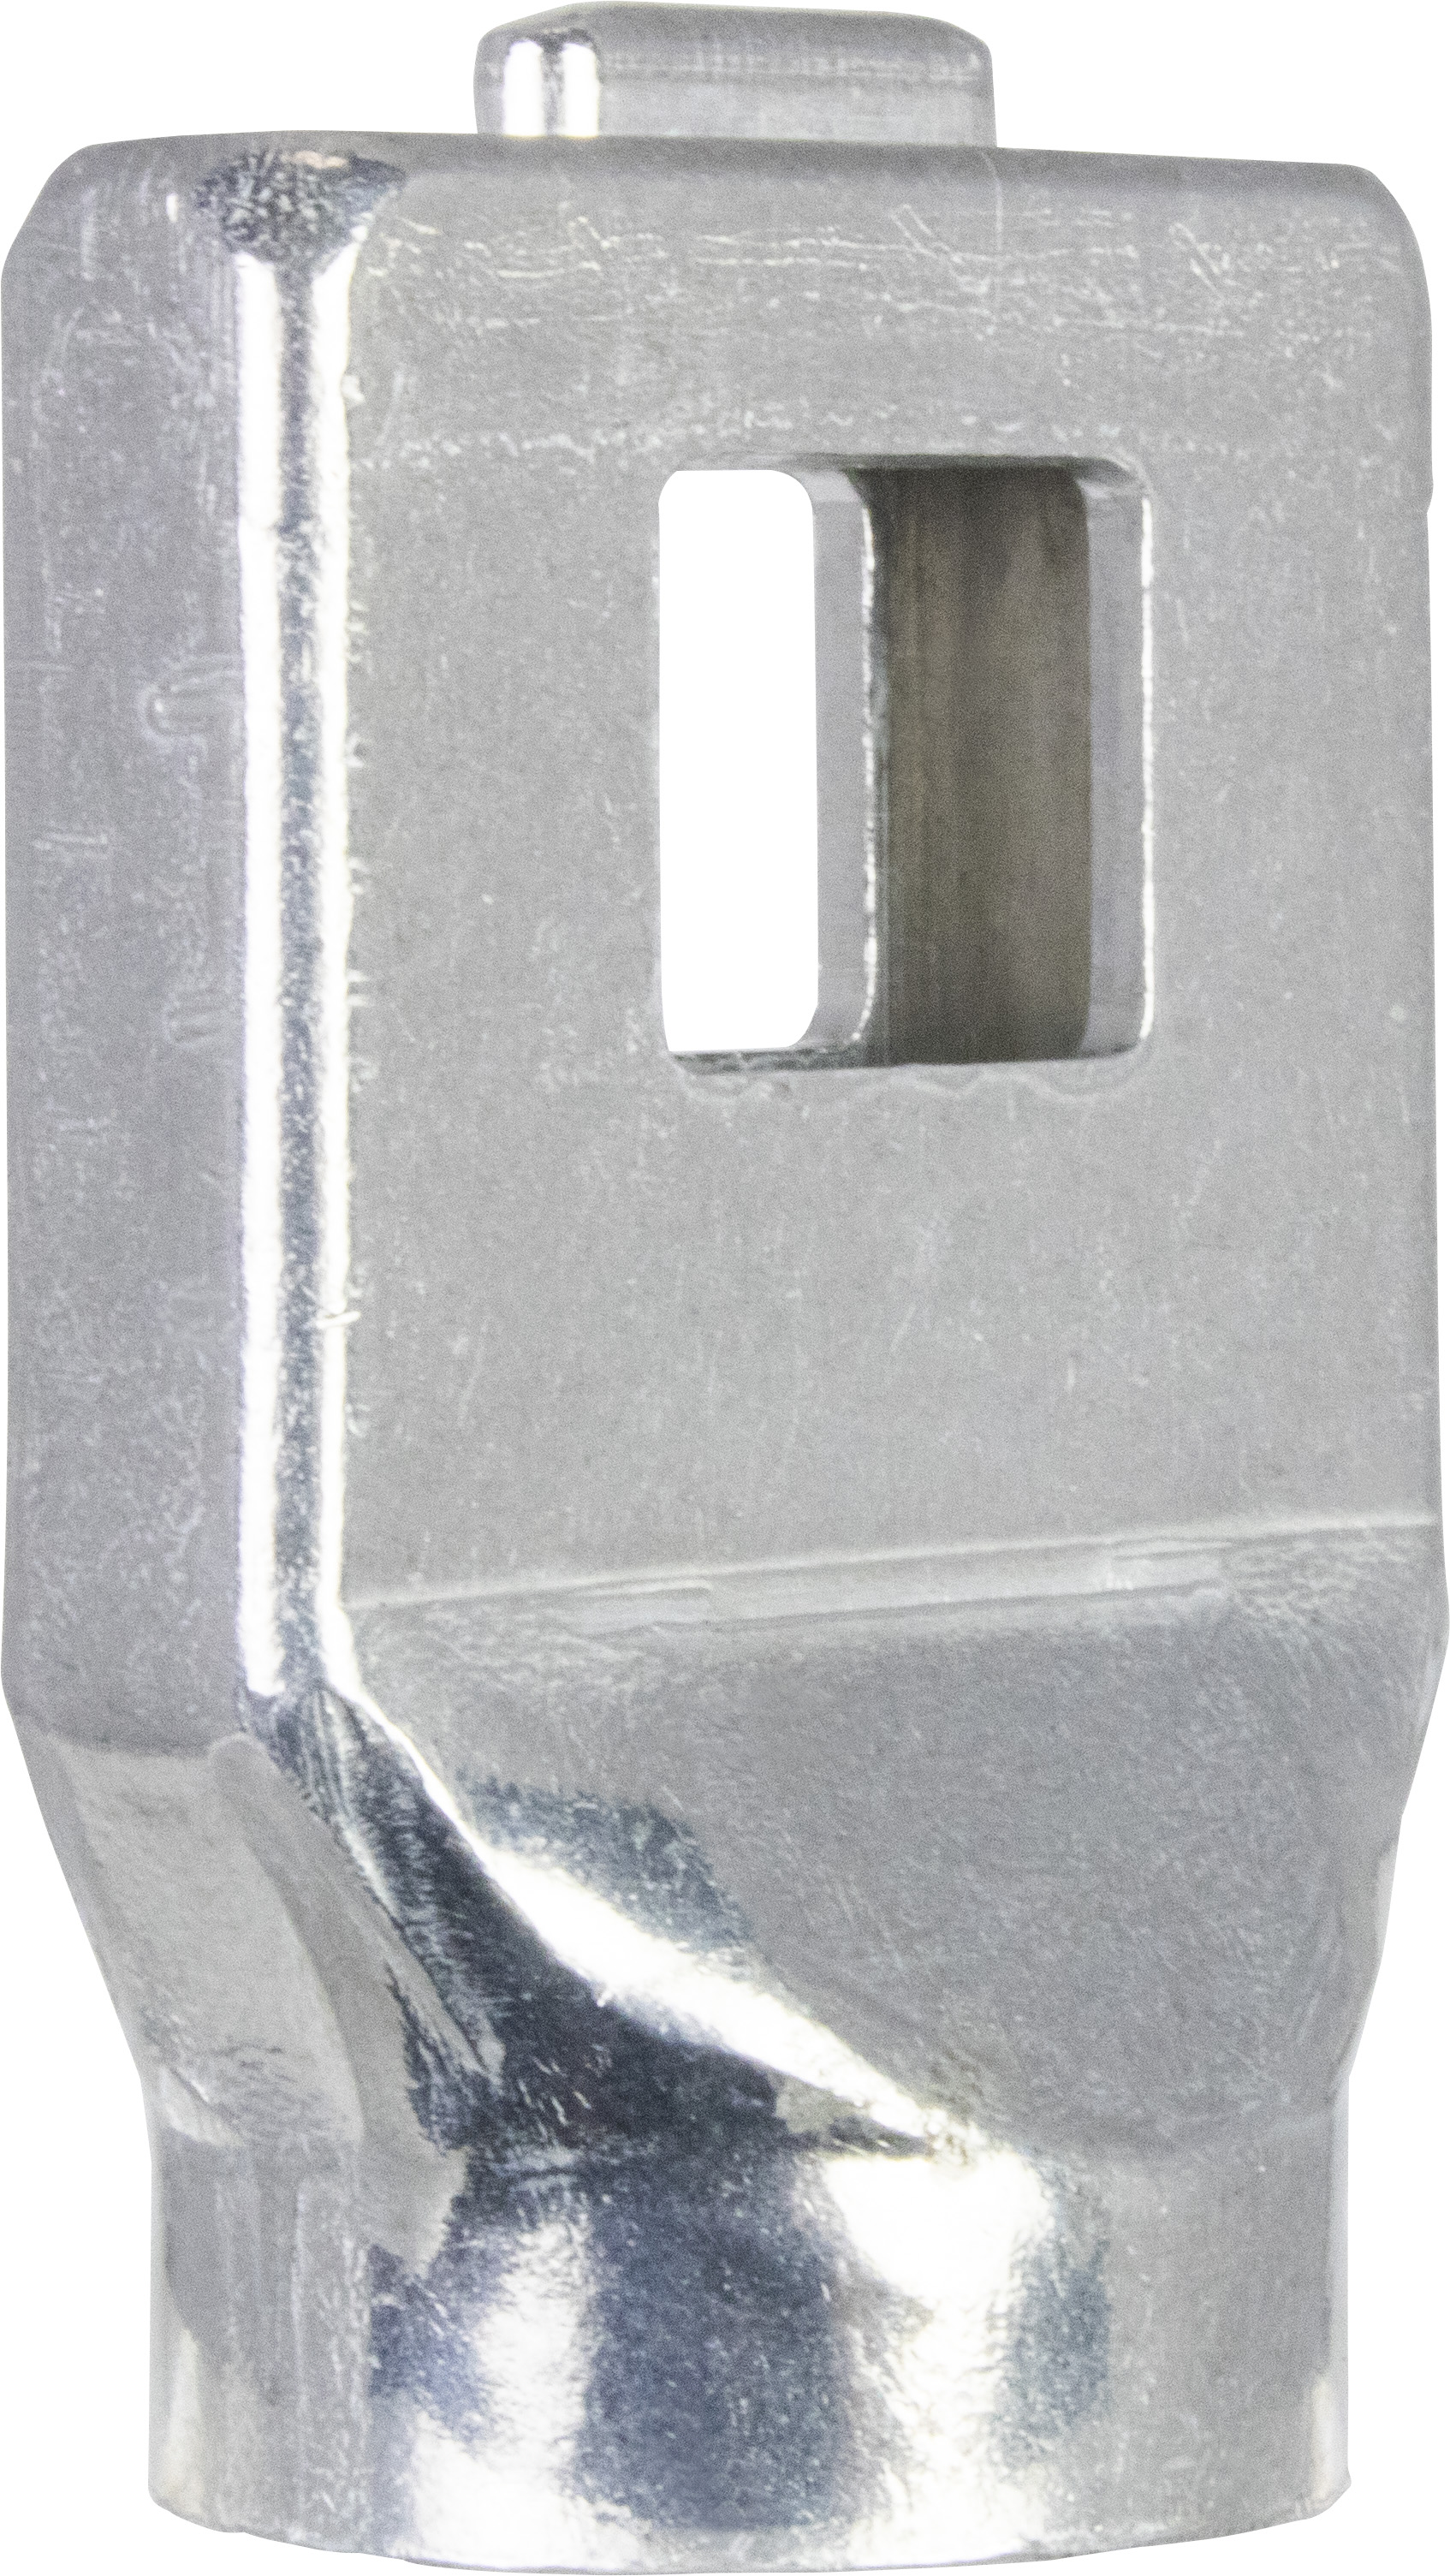 6061 Aluminum Extrusion w Square hole